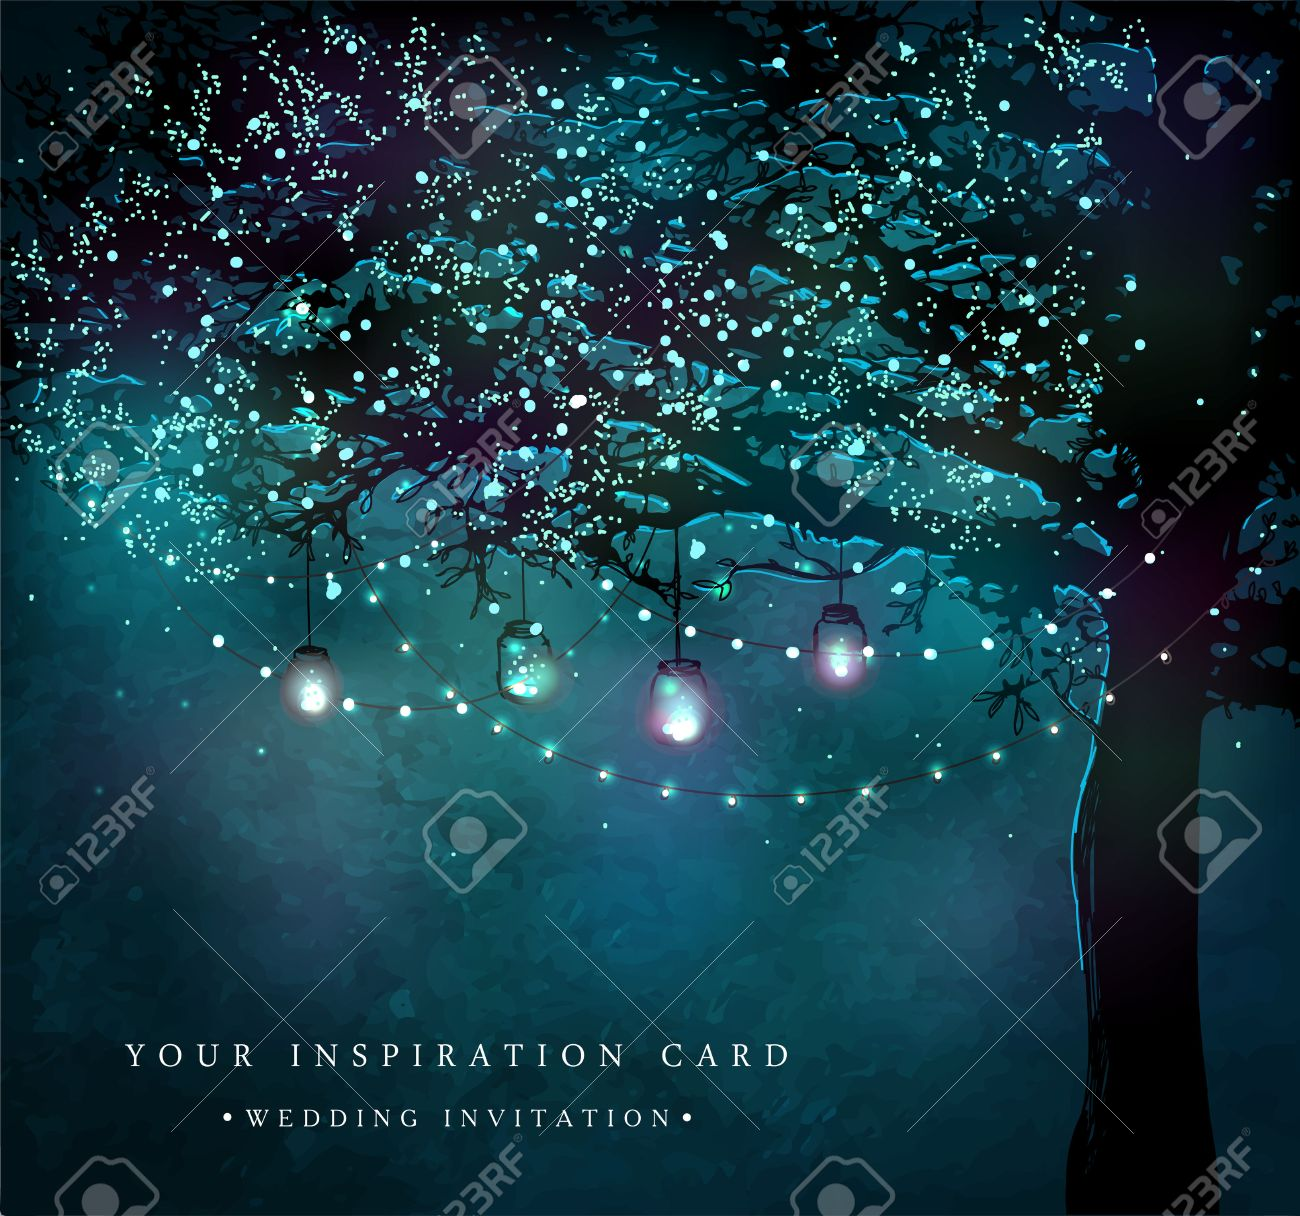 Hanging decorative holiday lights for a party. Garden party invitation. Inspiration card for wedding, date, birthday, tea party - 52799733